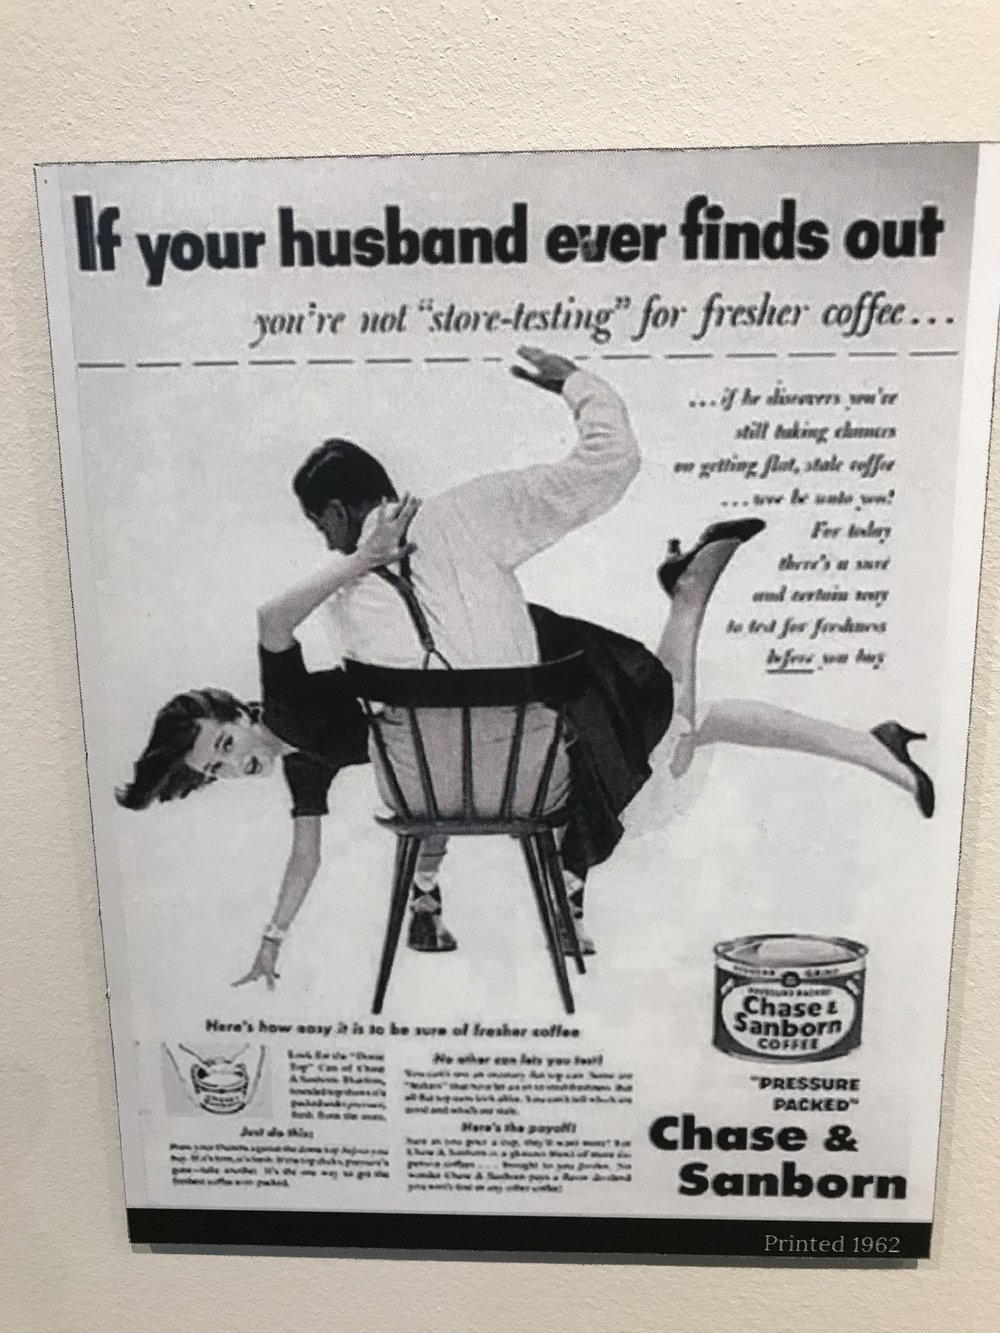 Spanking advertisement - aSHEville museum